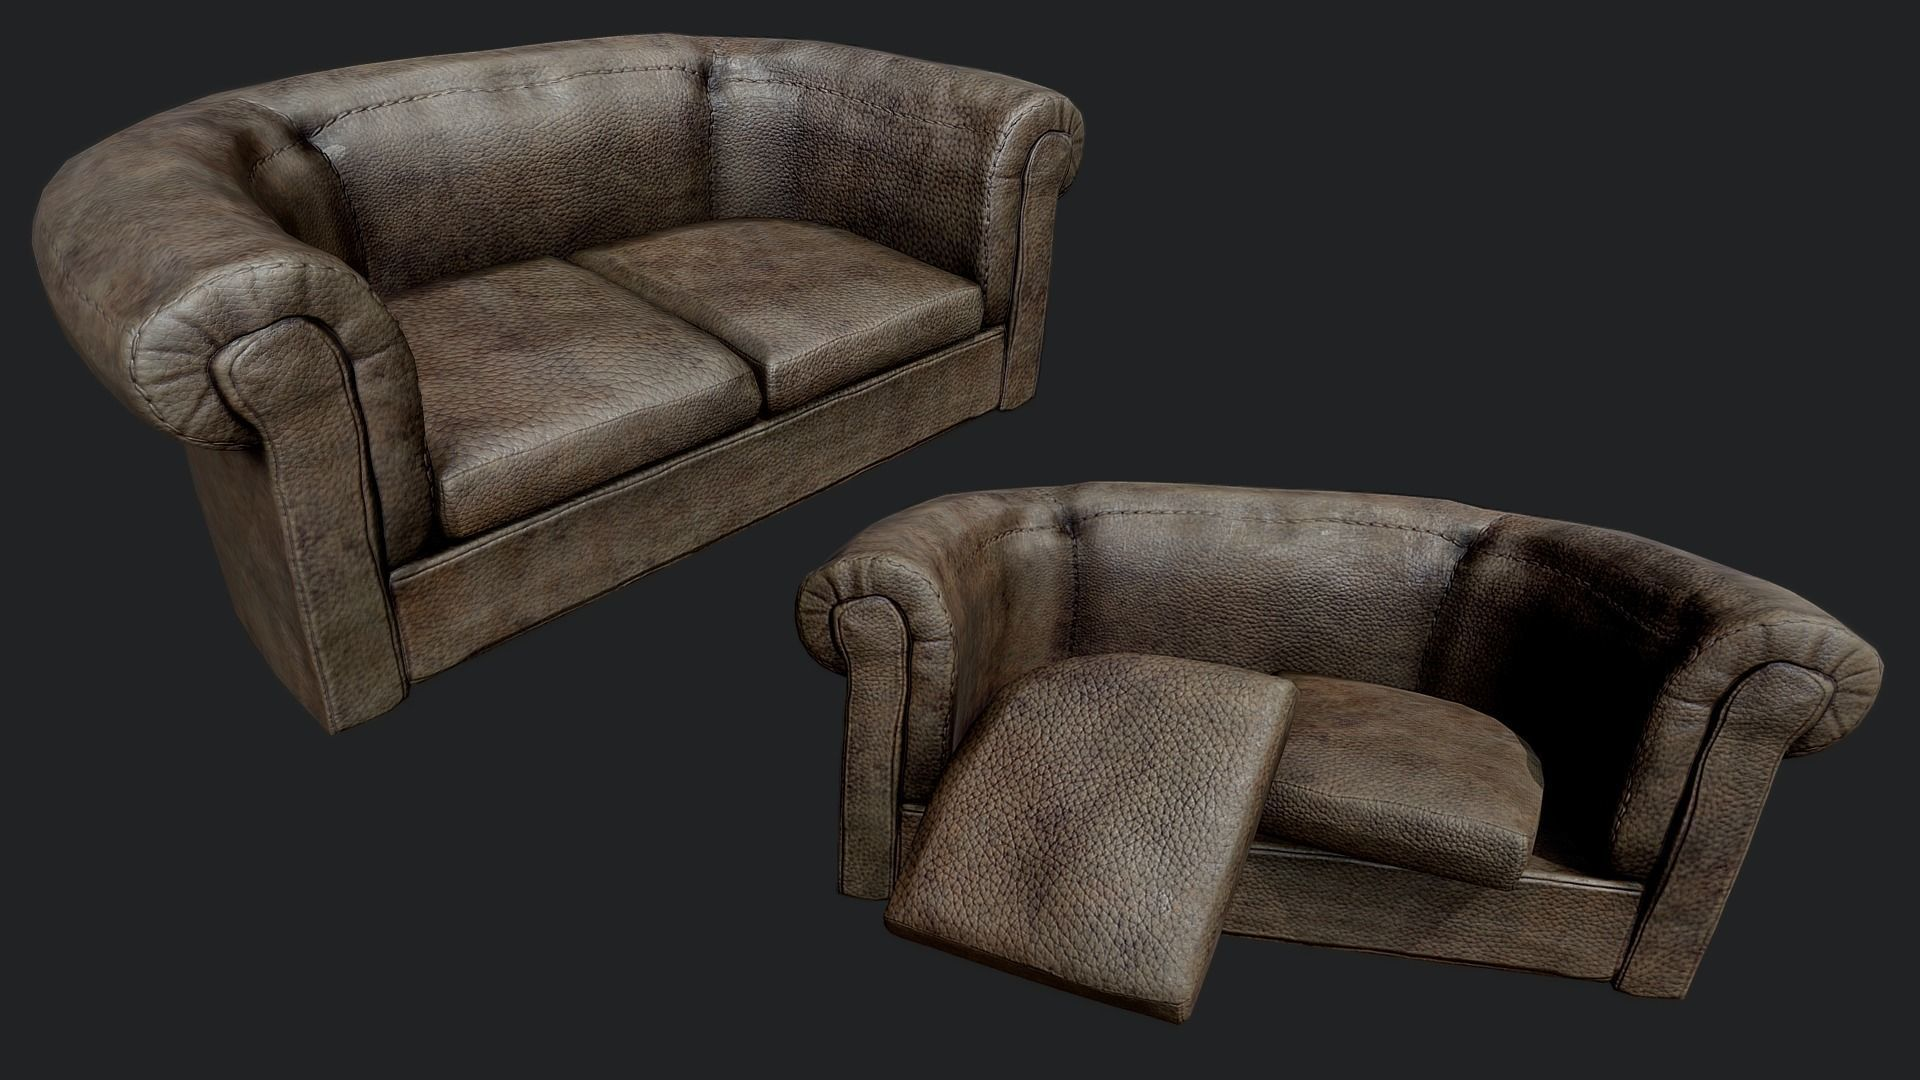 Old Leather Couch PBR | 3D model